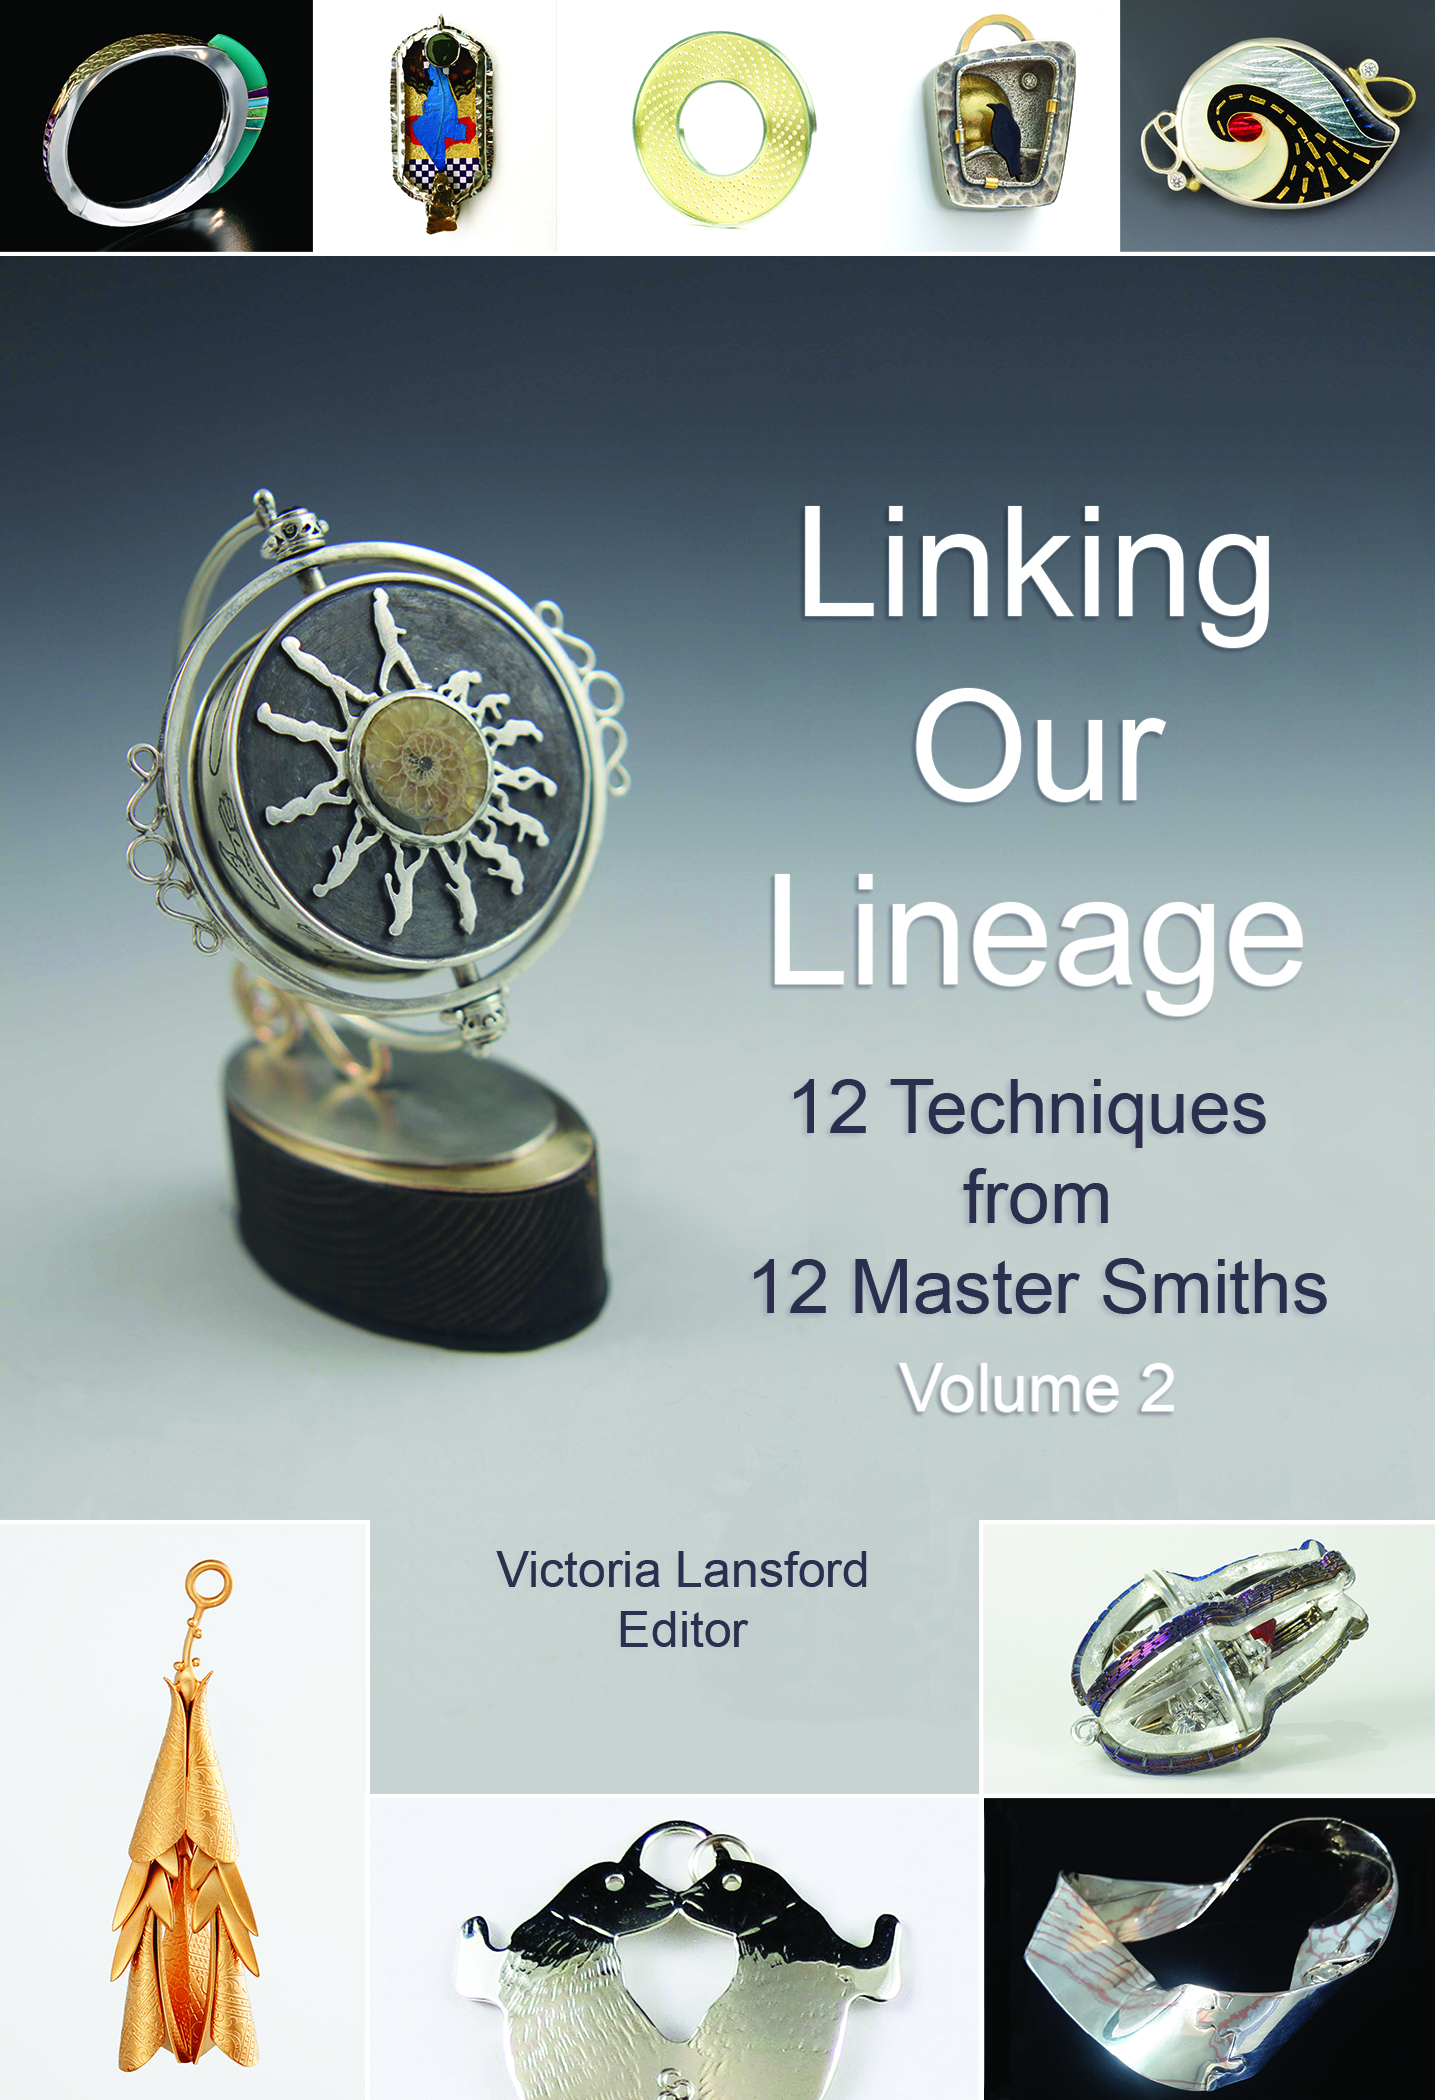 Linking-Our-Lineage-Vol-2-cover.jpg